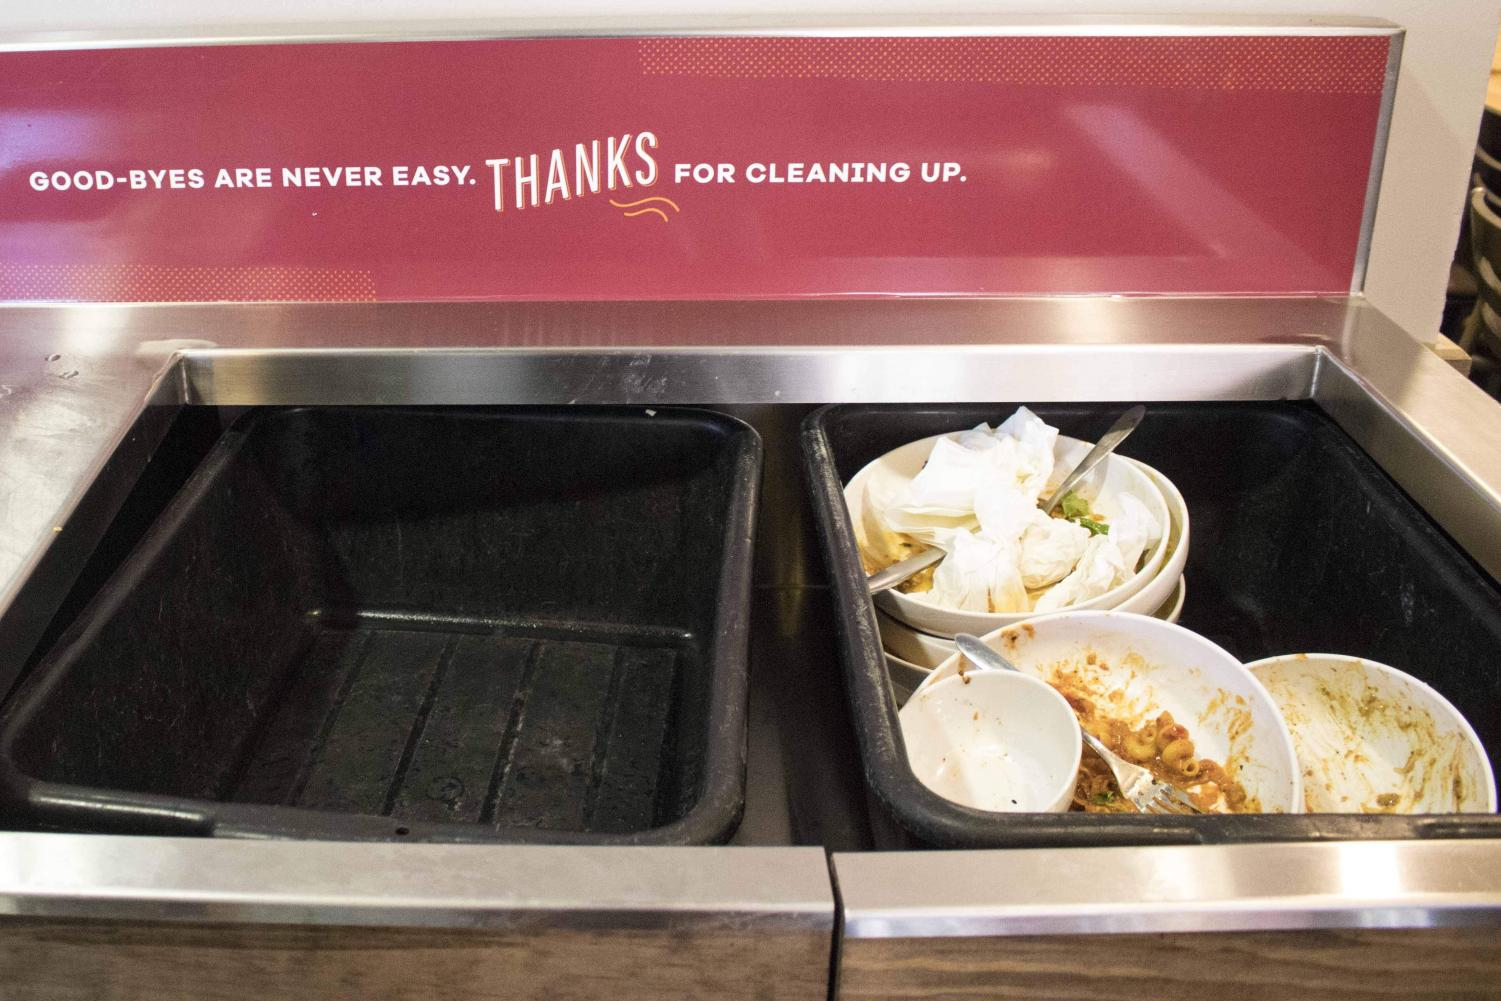 Food waste is commonly found in dining halls and restaurants on campus. A recent study suggests young adults, ages 18-24, are more likely to waste food due to a lack of awareness.